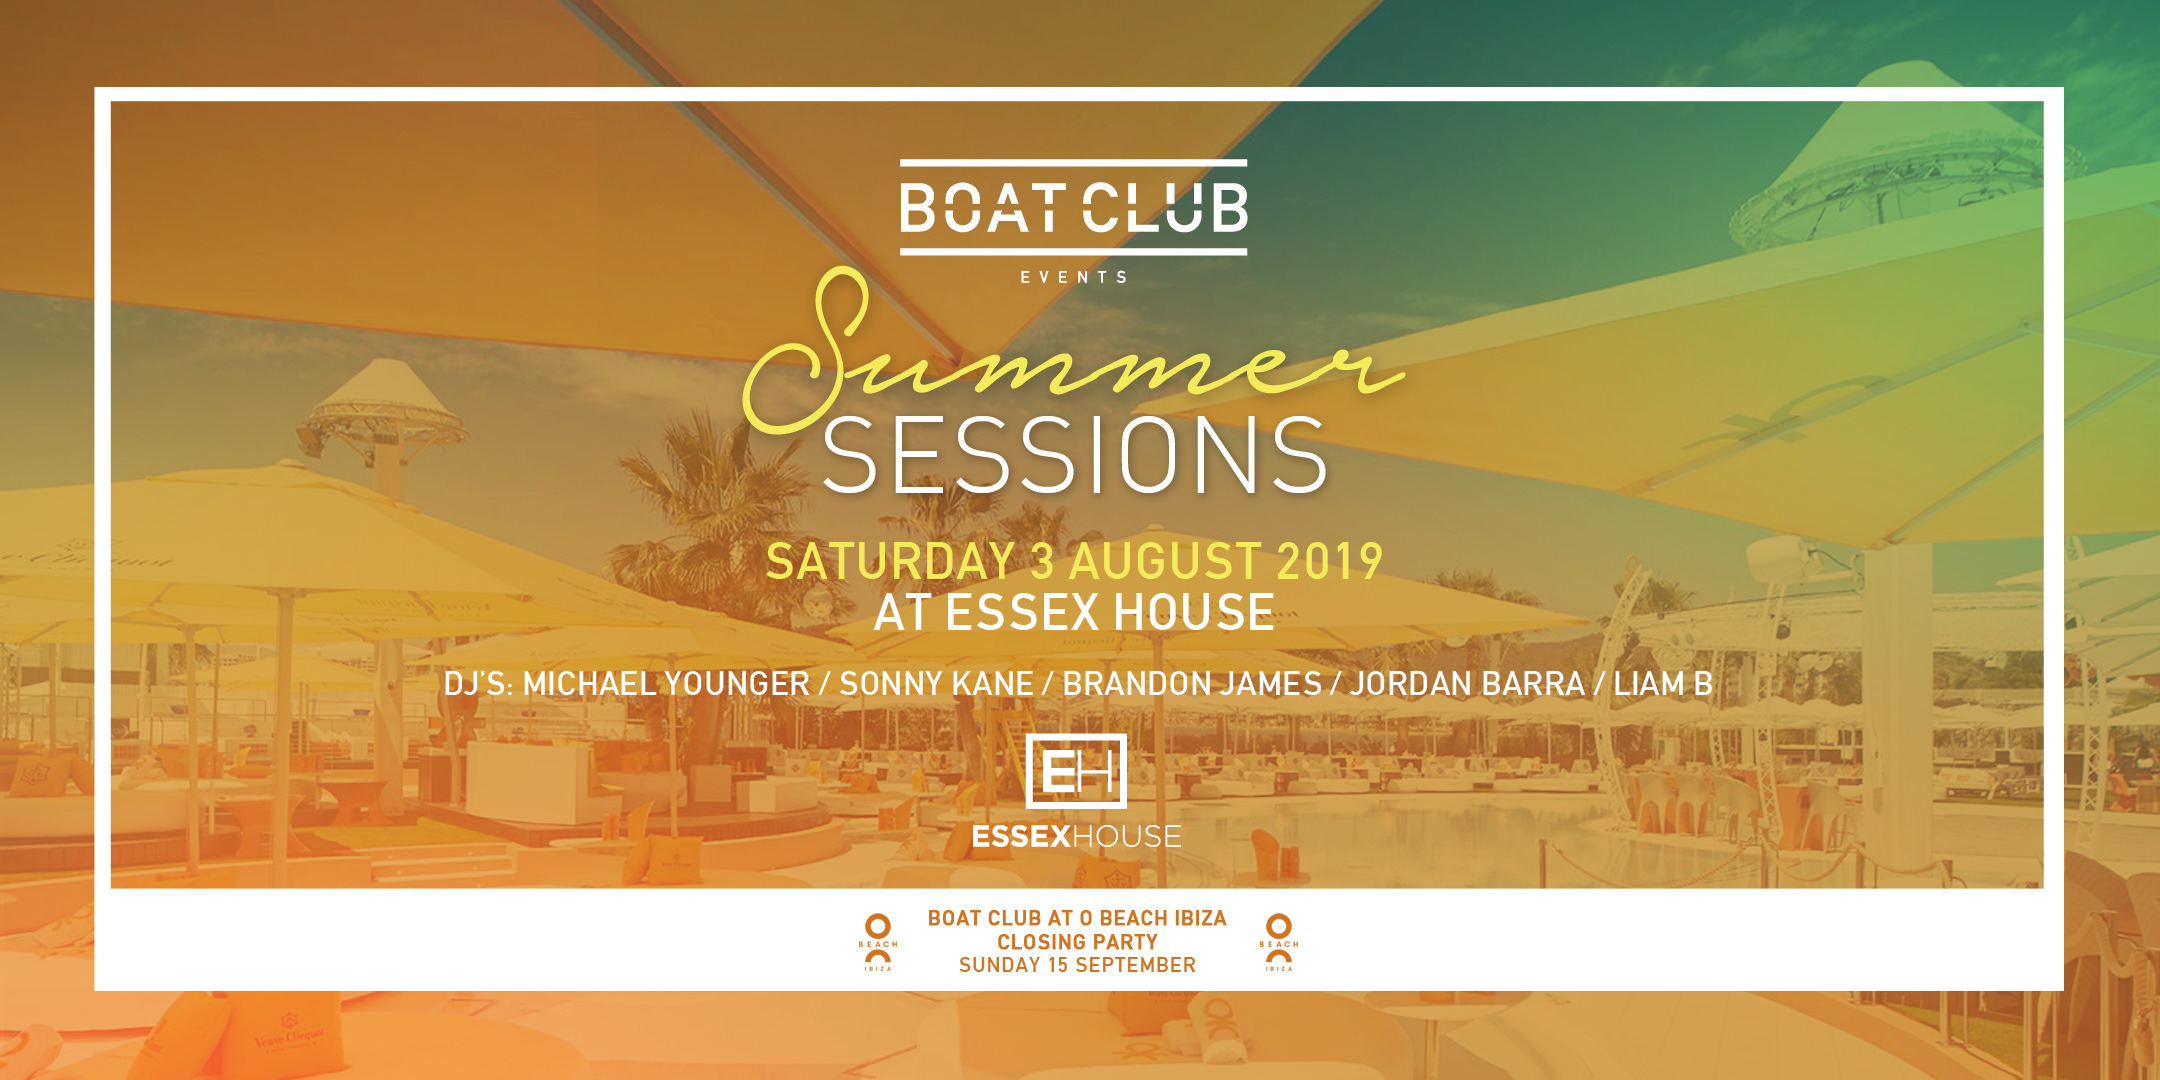 Boat Club Summer Sessions 3 Aug 2019 Tkt site